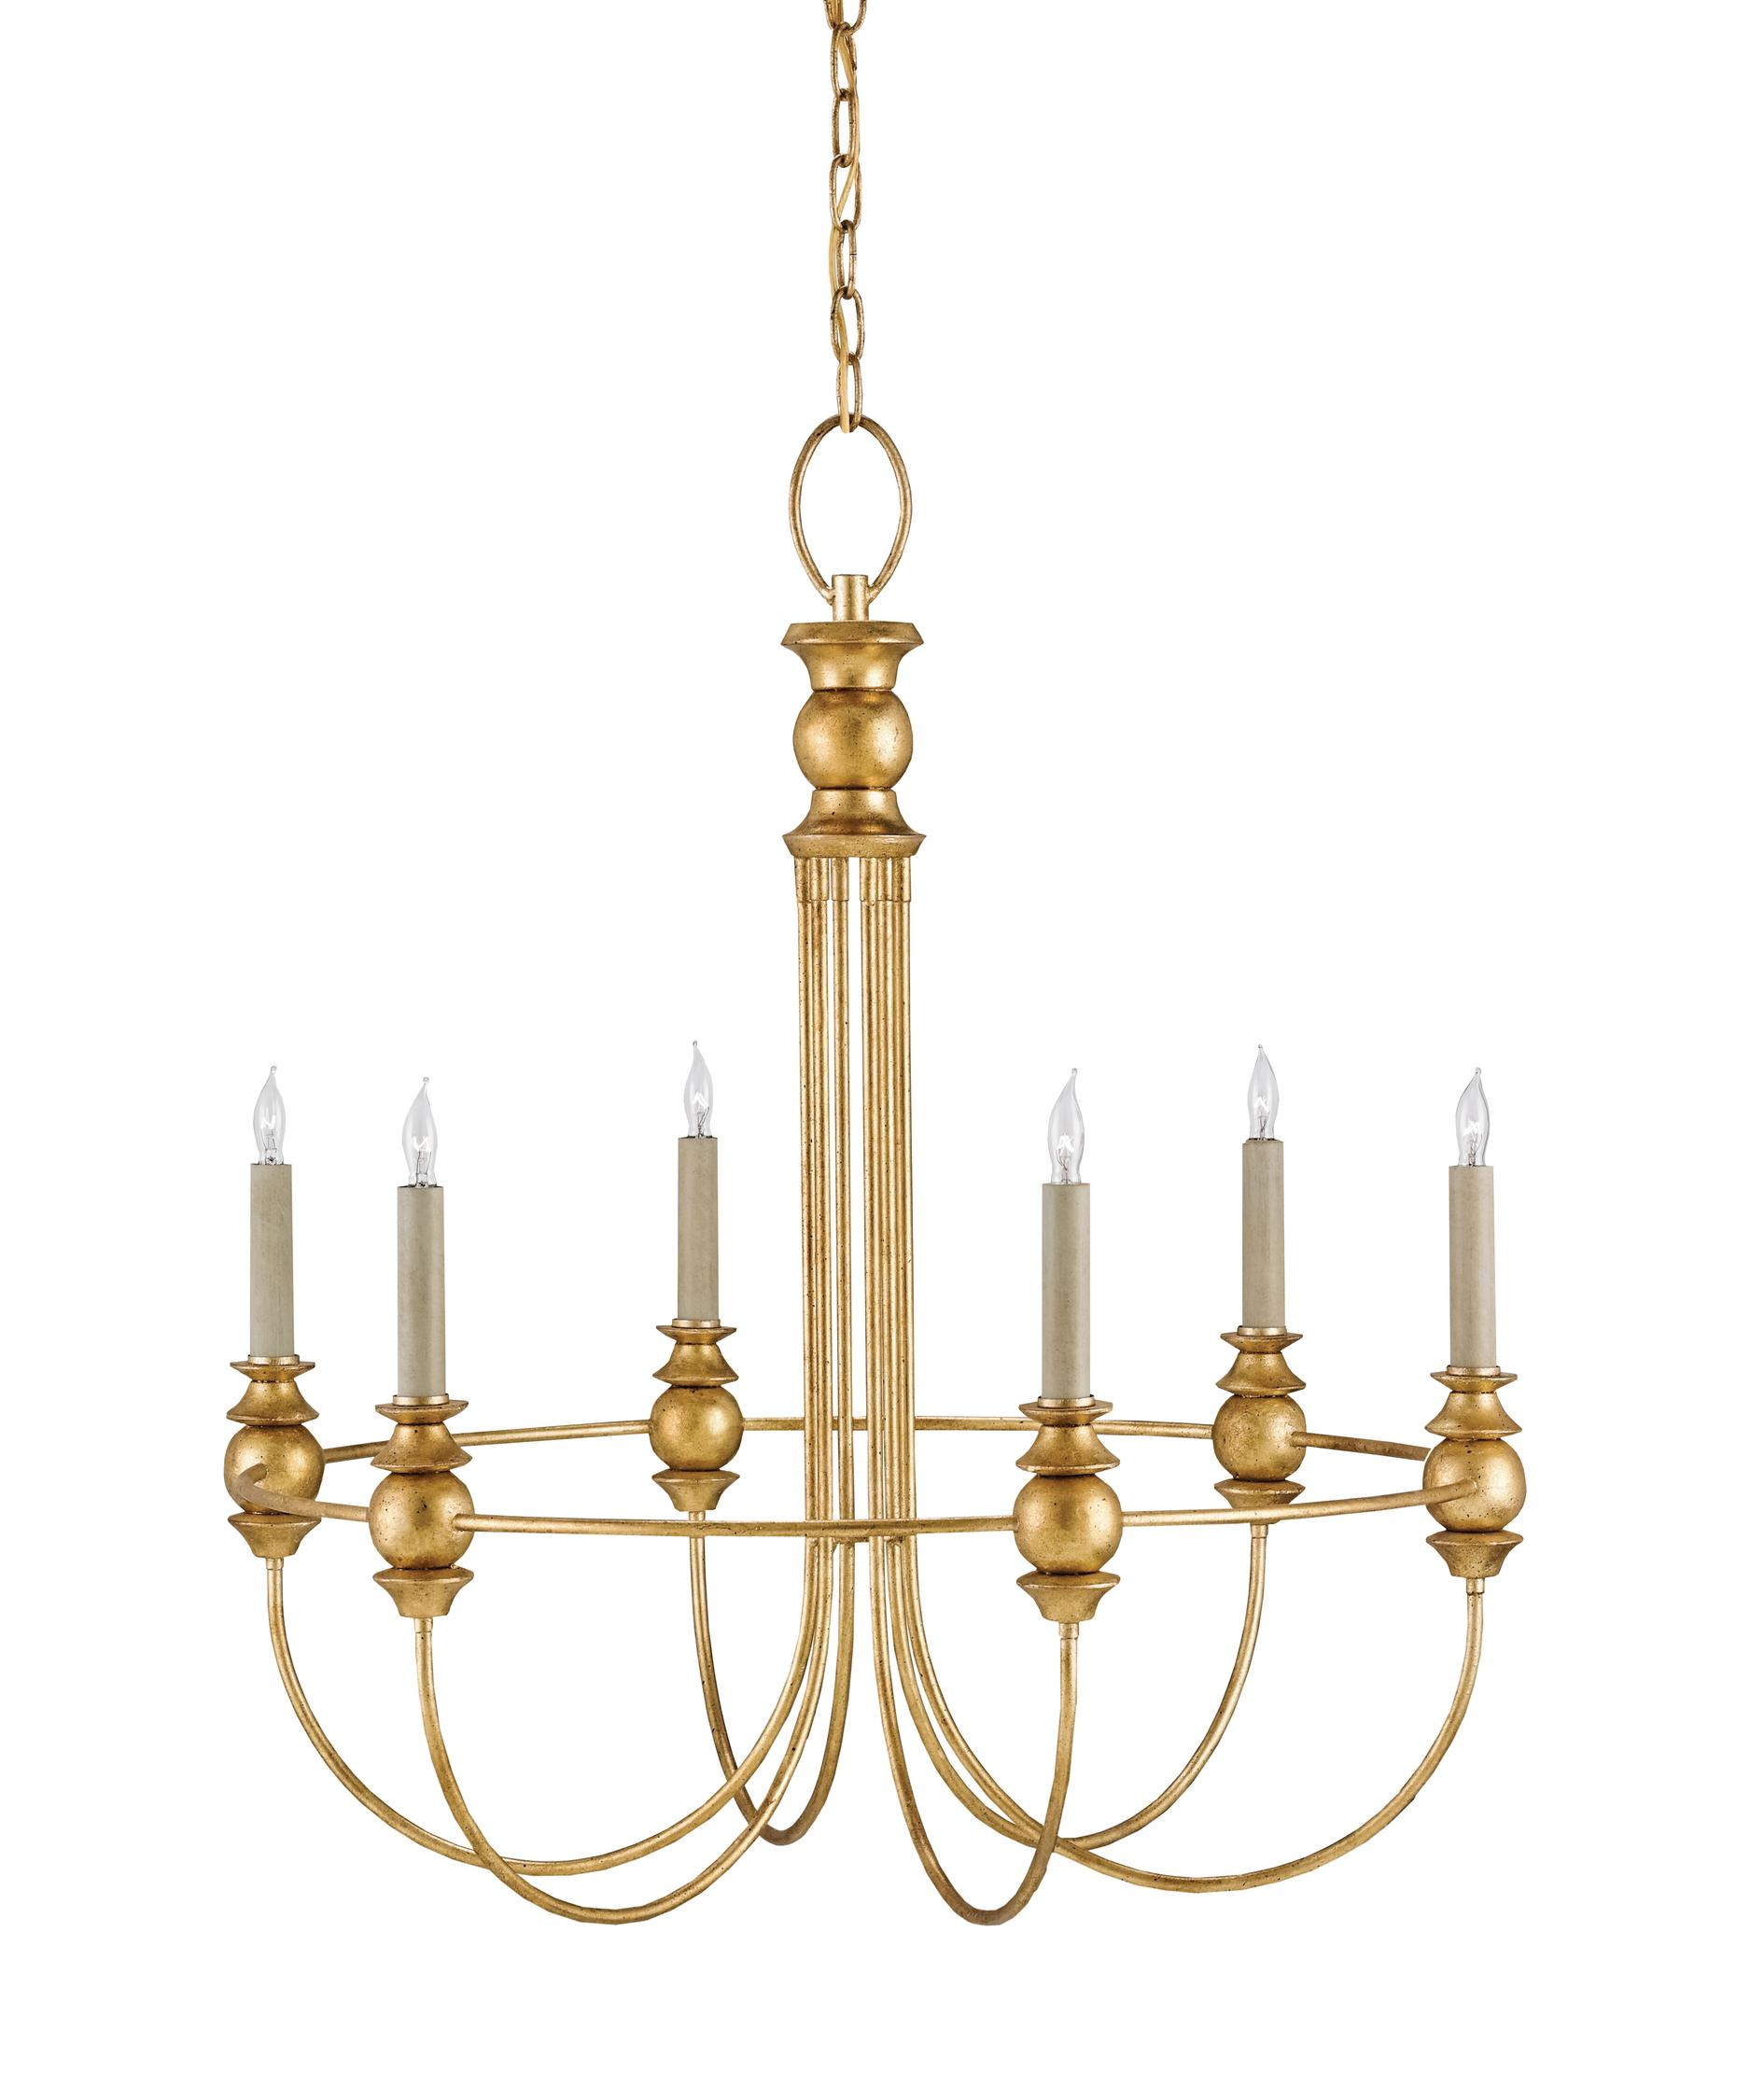 Currey and Company Fairlight 27 Inch Wide 6 Light Chandelier – Currey and Company Lighting Chandeliers